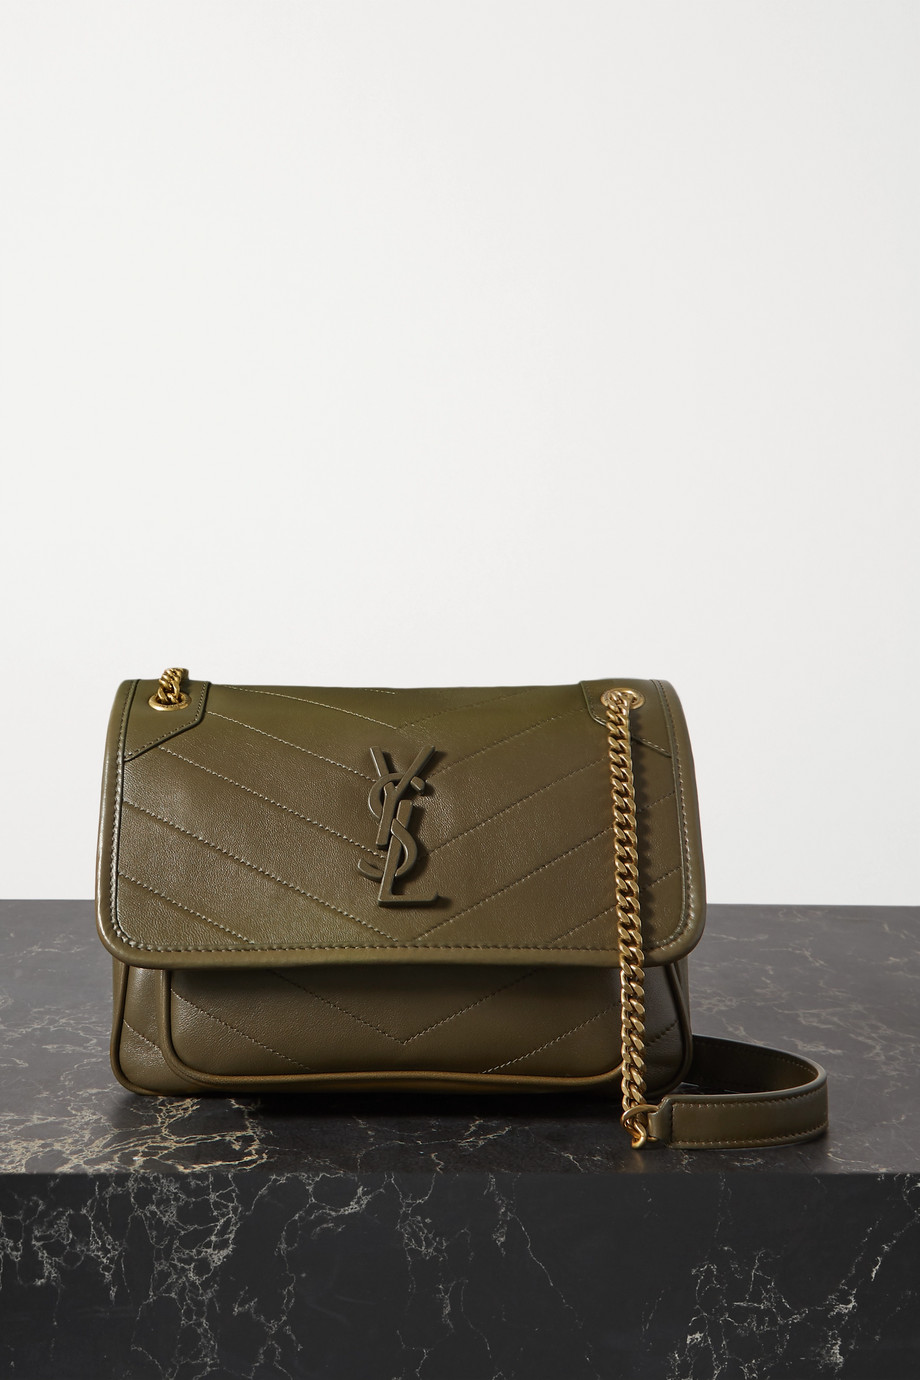 SAINT LAURENT Niki Baby mini quilted leather shoulder bag